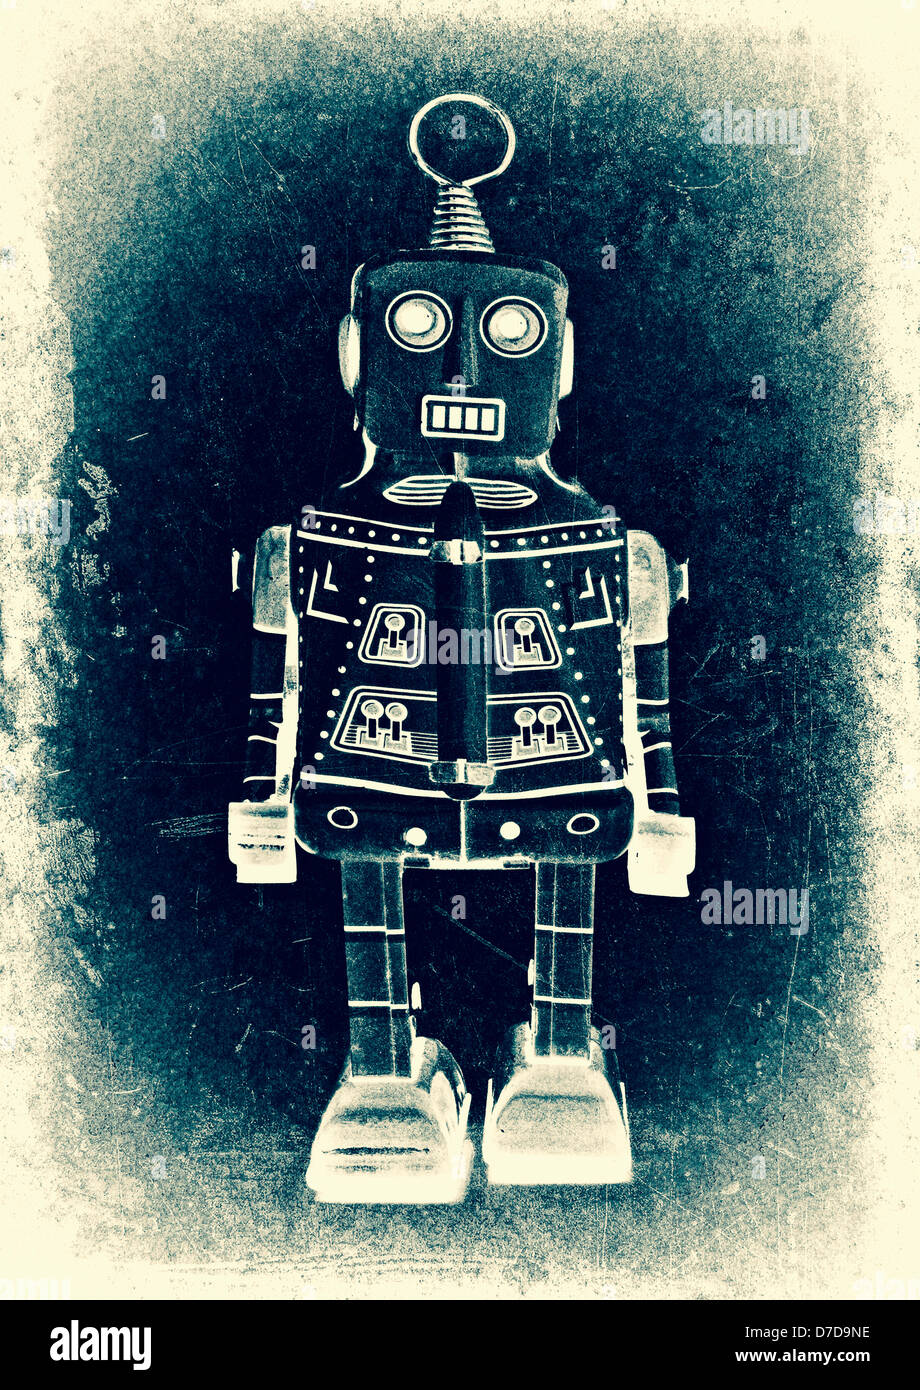 old robot (retro inspired image) - Stock Image